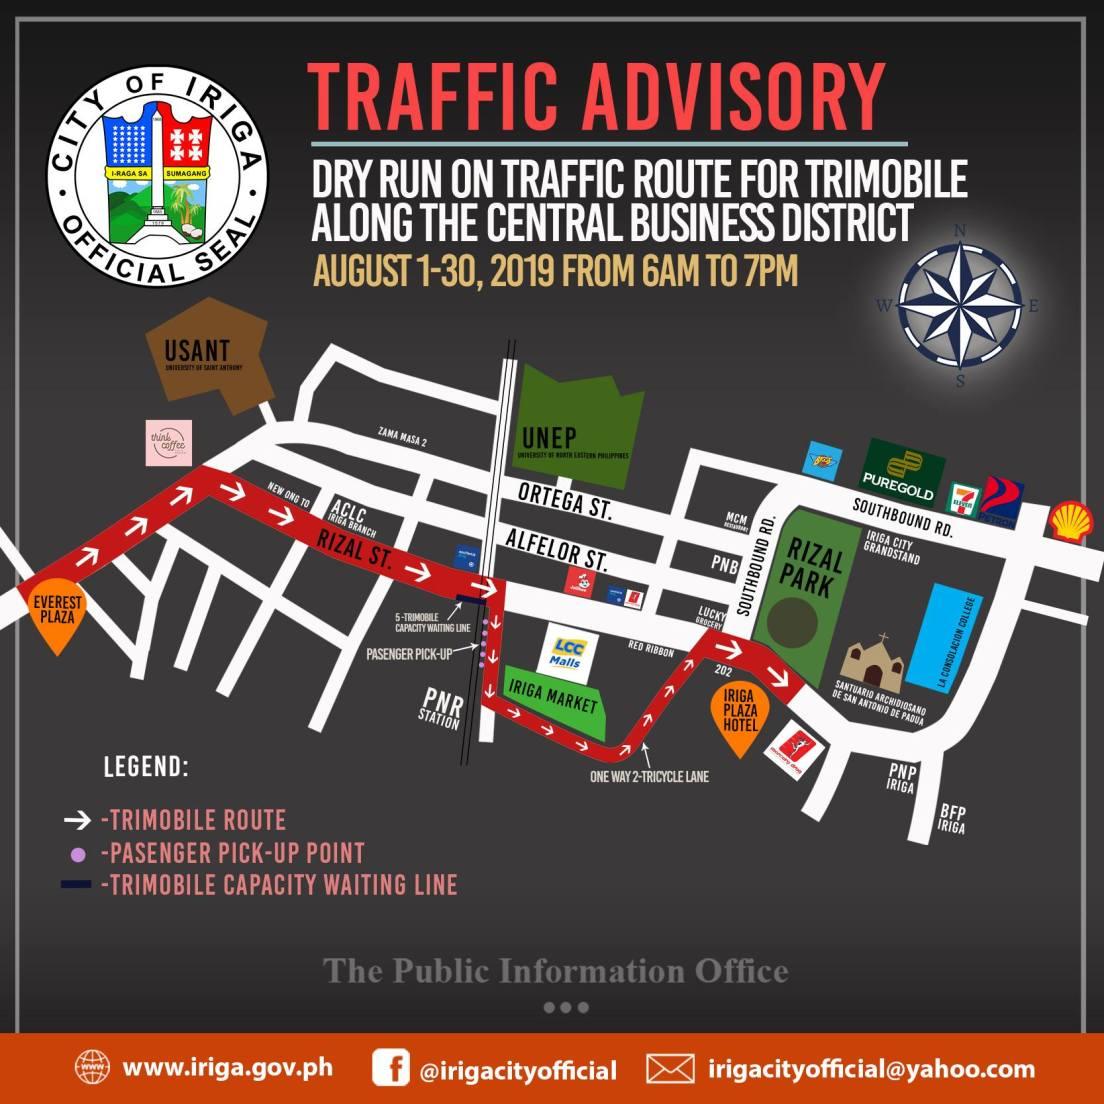 Iriga City commences dry run on trimobile re-routing to decongest central business district